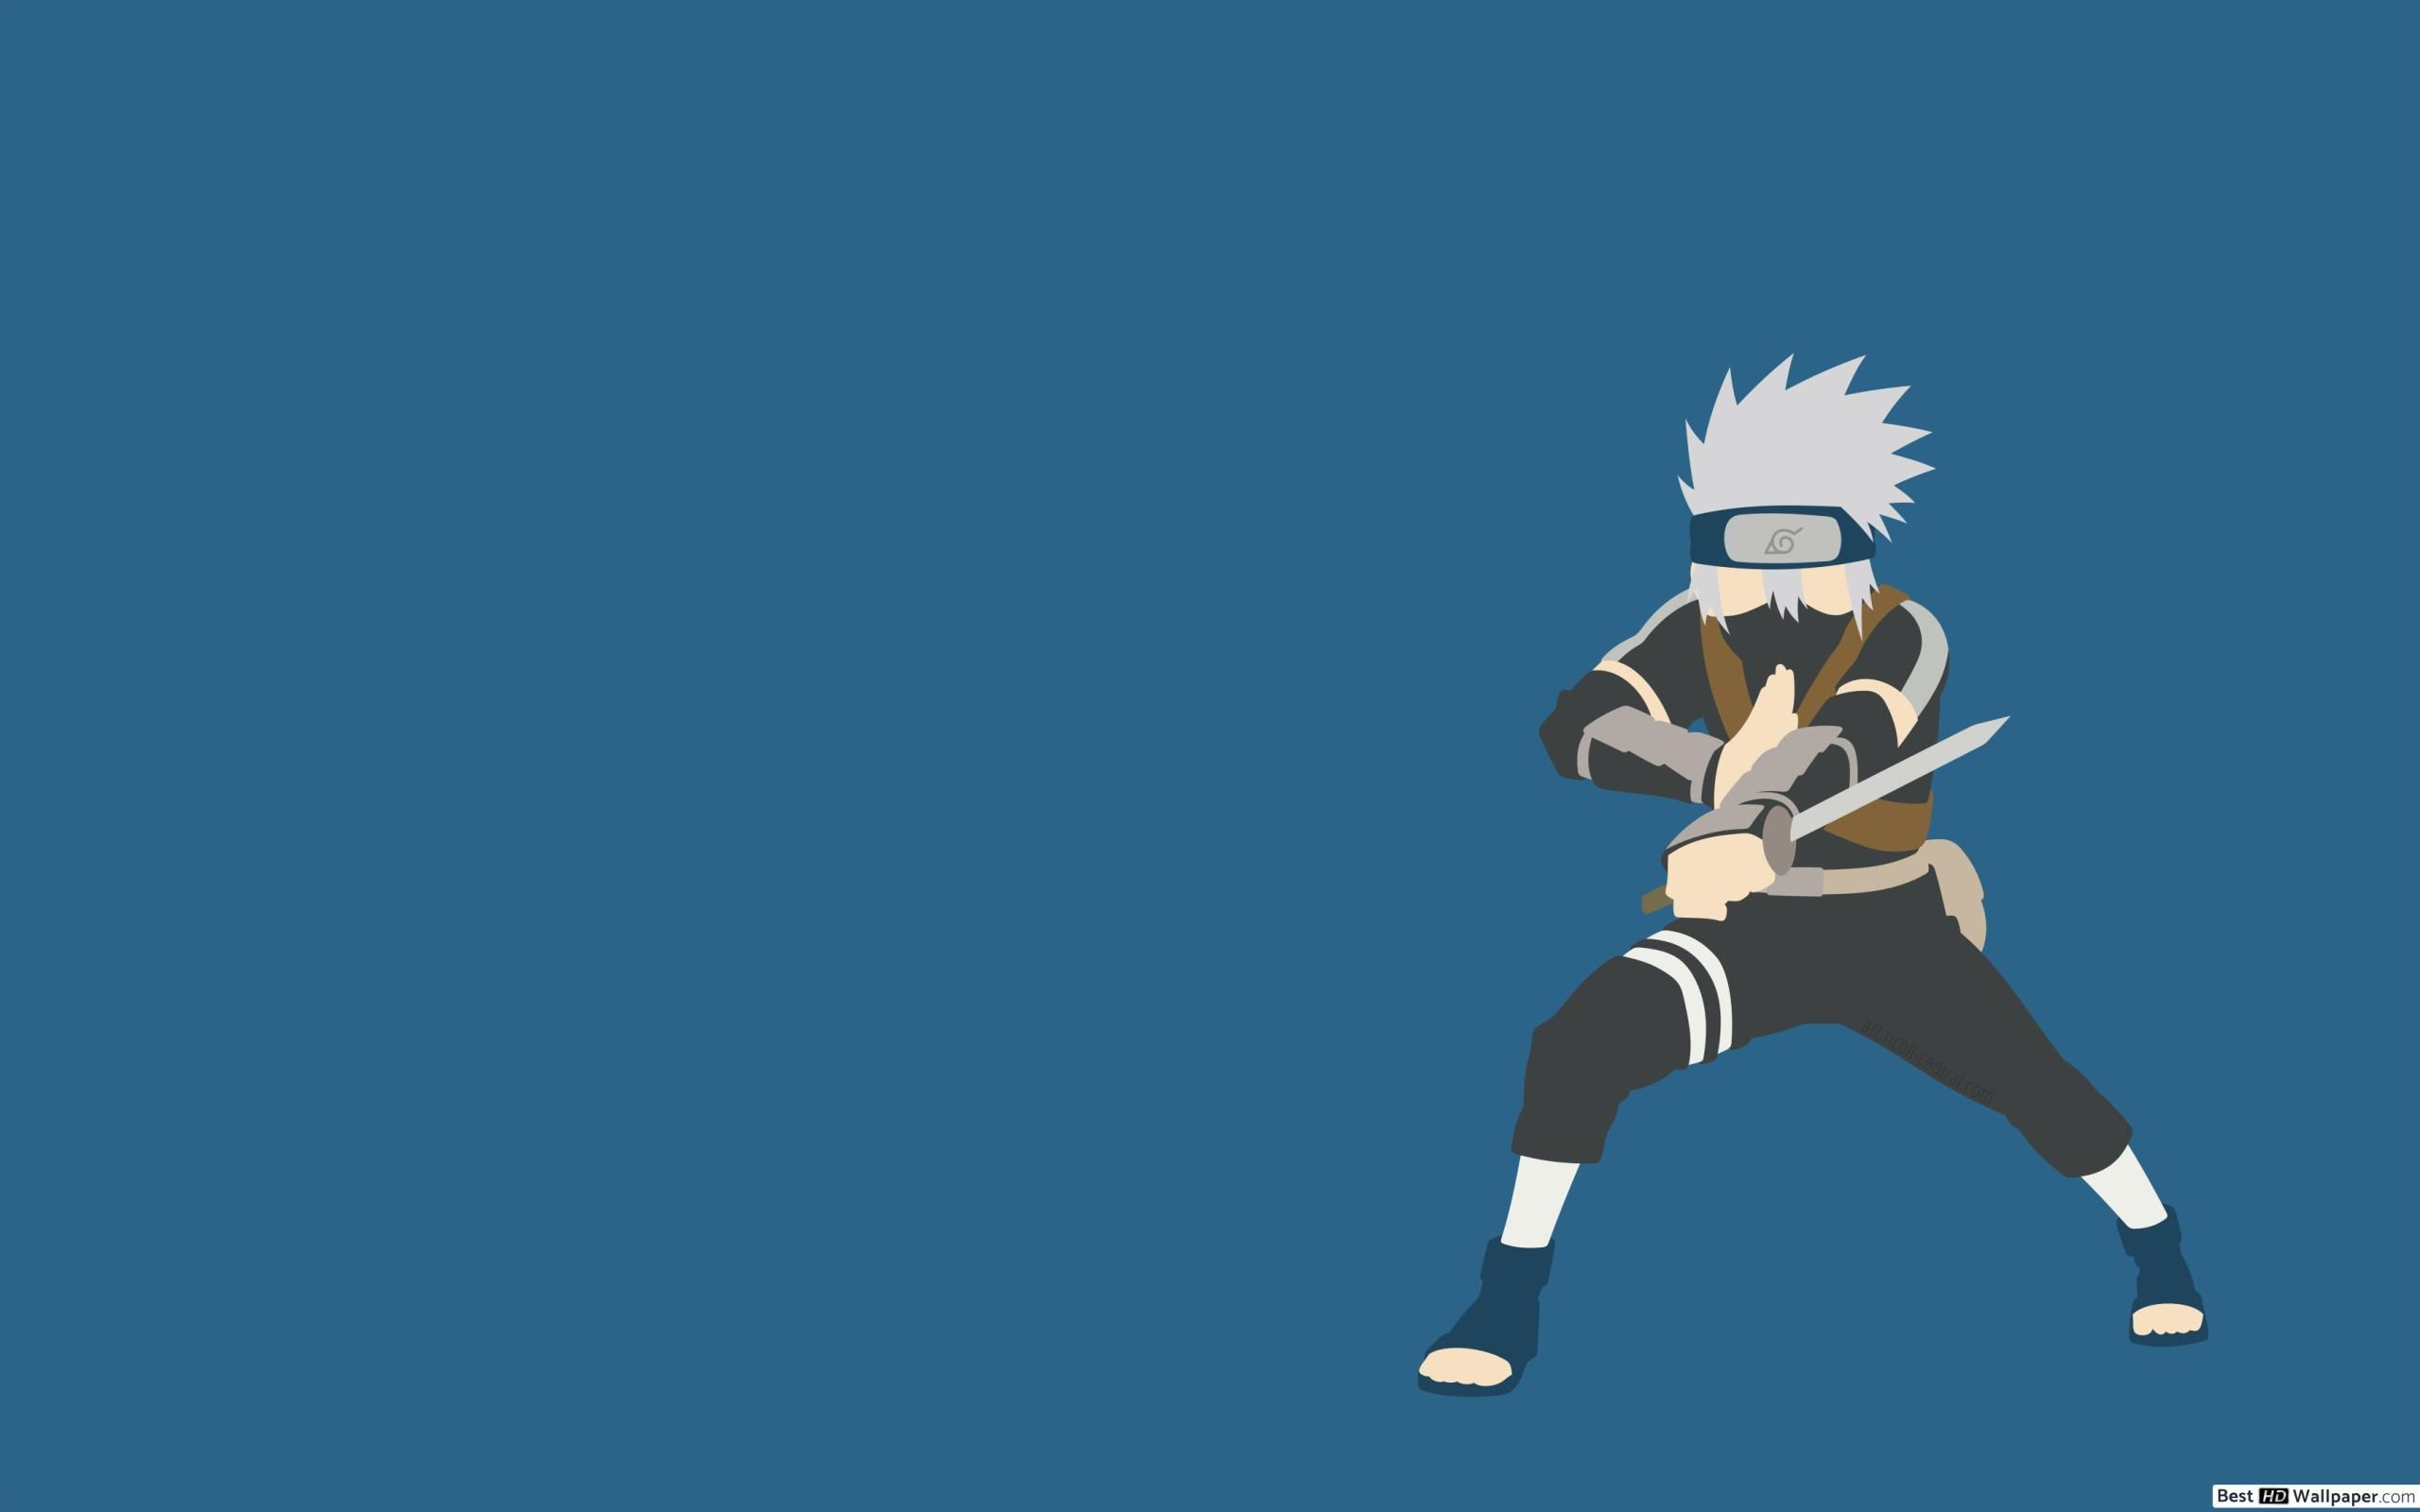 Naruto Ipad Wallpapers Top Free Naruto Ipad Backgrounds Wallpaperaccess